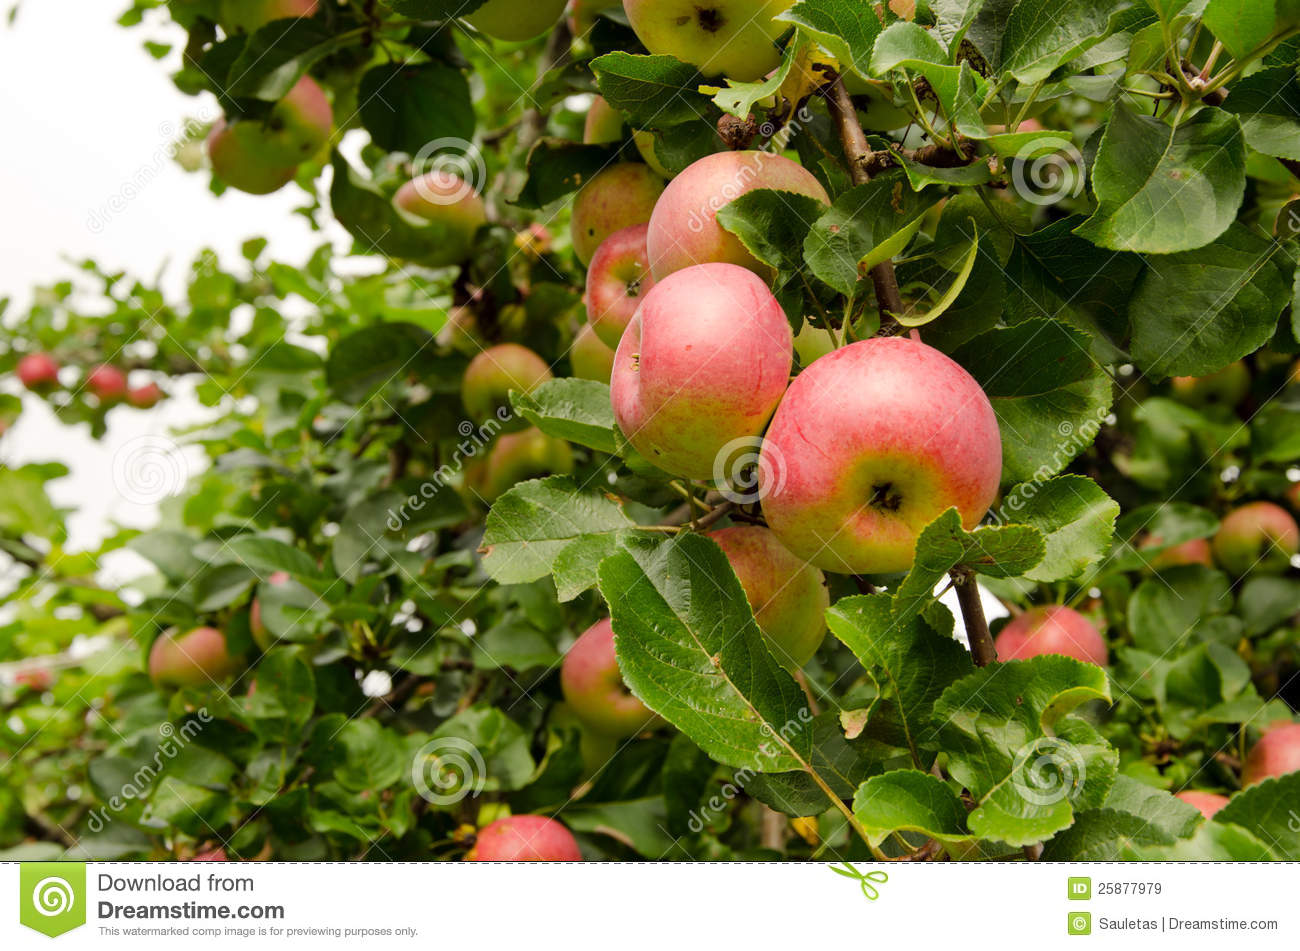 Fall Harvest Wallpaper Hd Ripe Apple Hang On Fruit Tree Branch Healthy Food Royalty